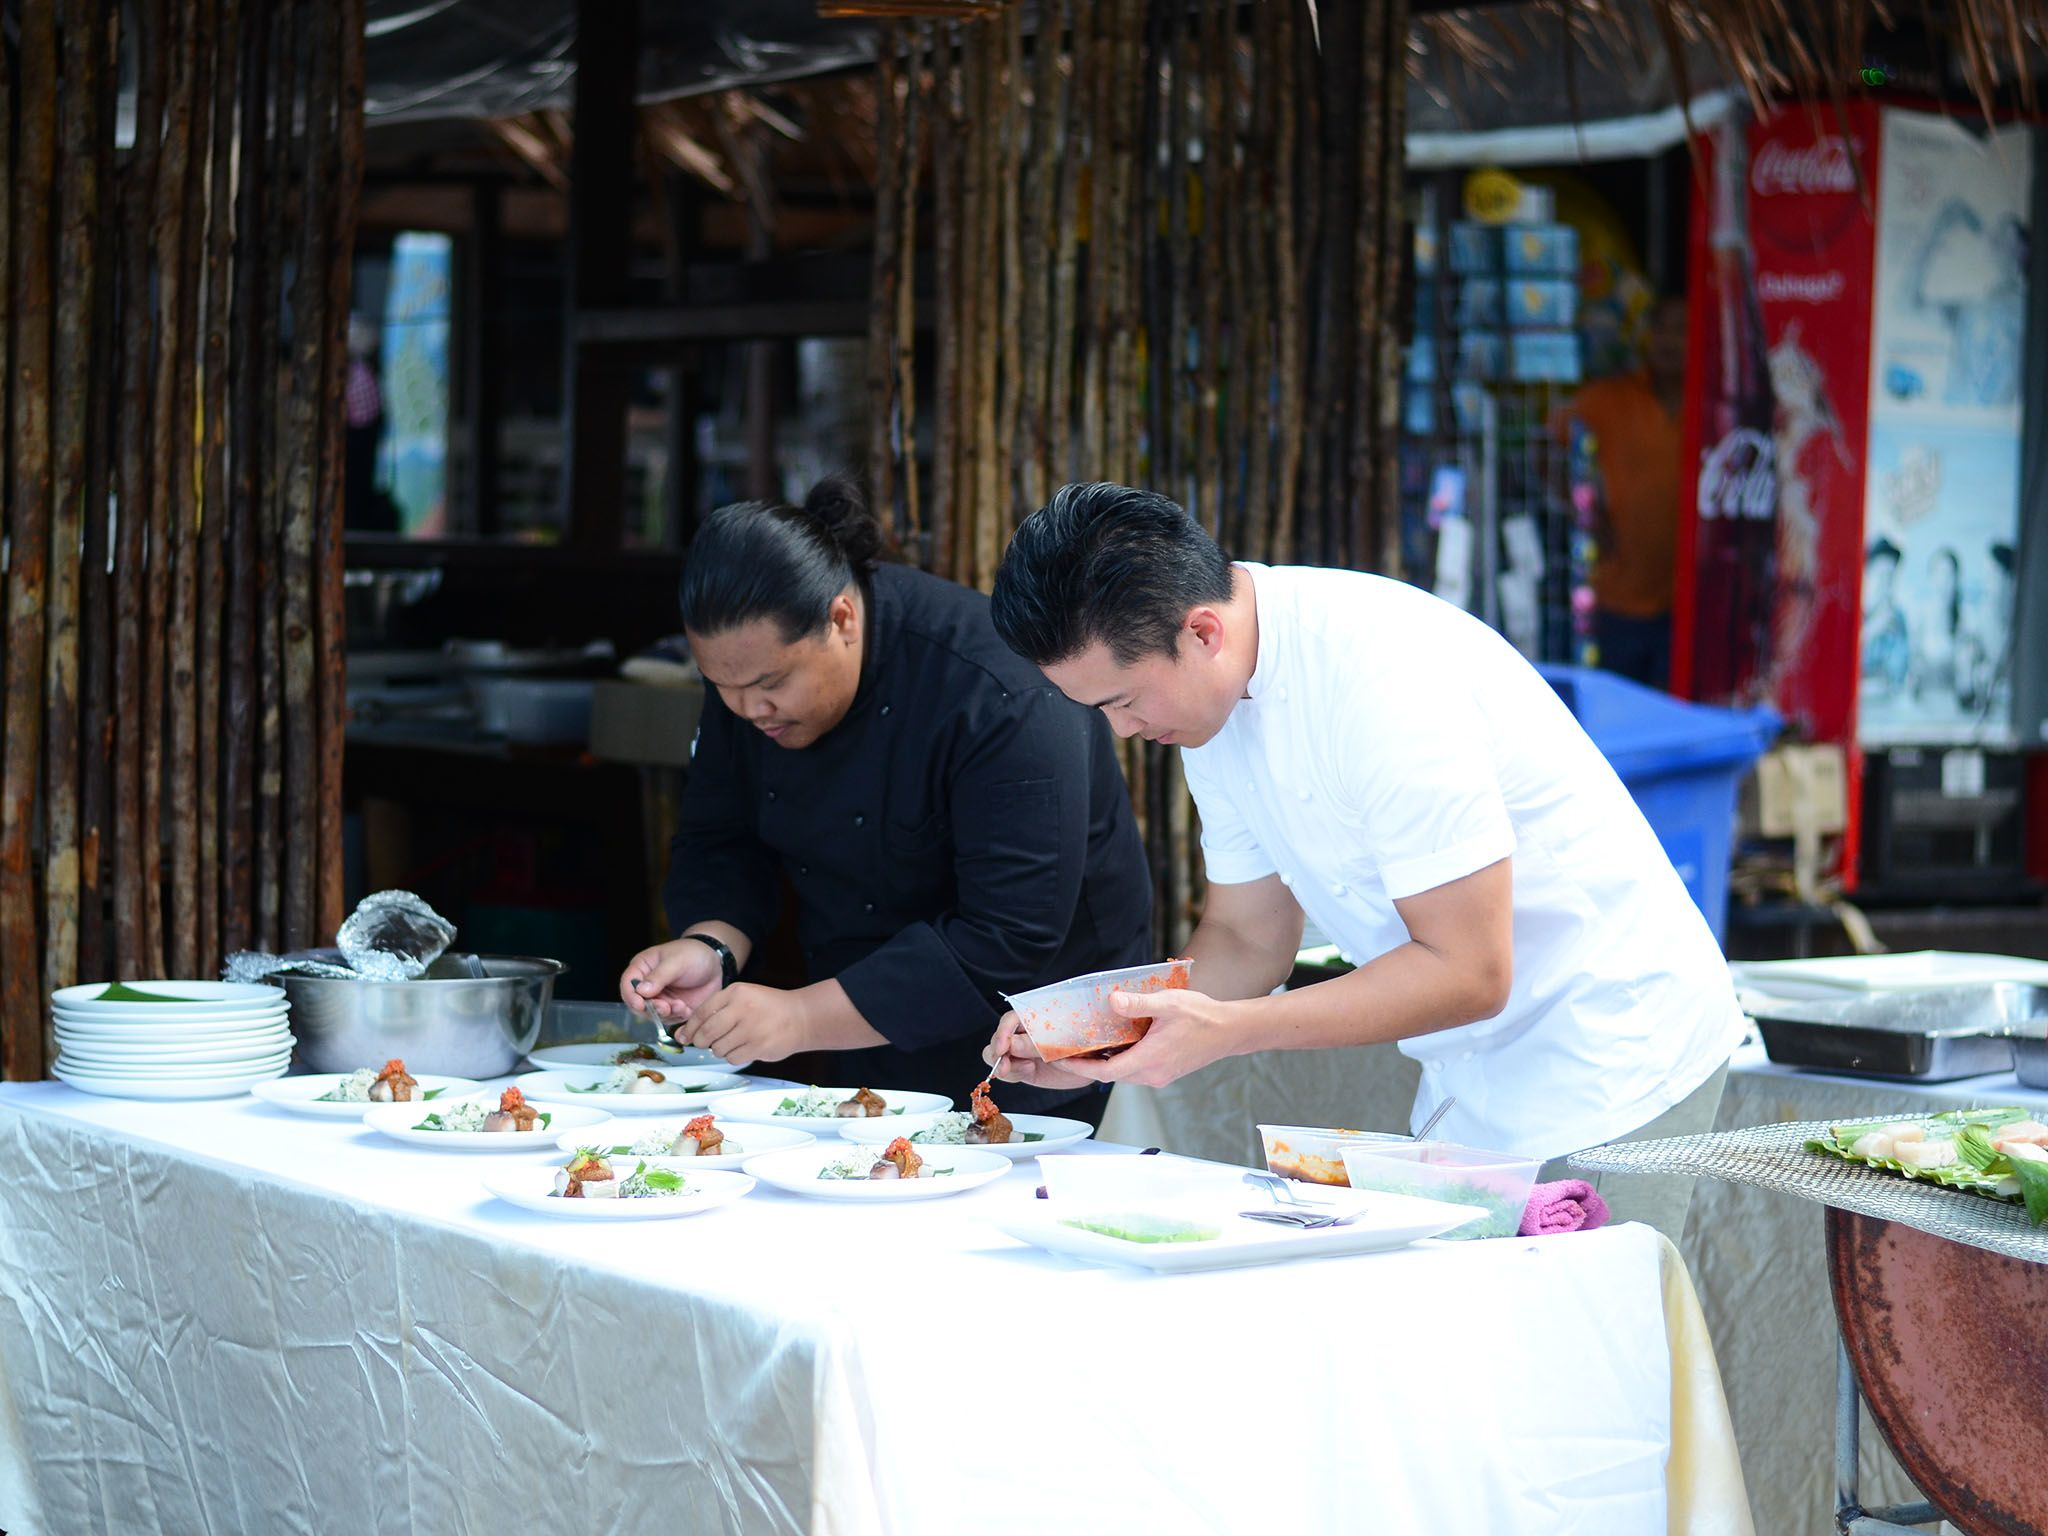 Terengganu, Malaysia: It's time to plate. Viet and Taufiq plates the dish uniformly yet... [Photo of the day - November 2016]